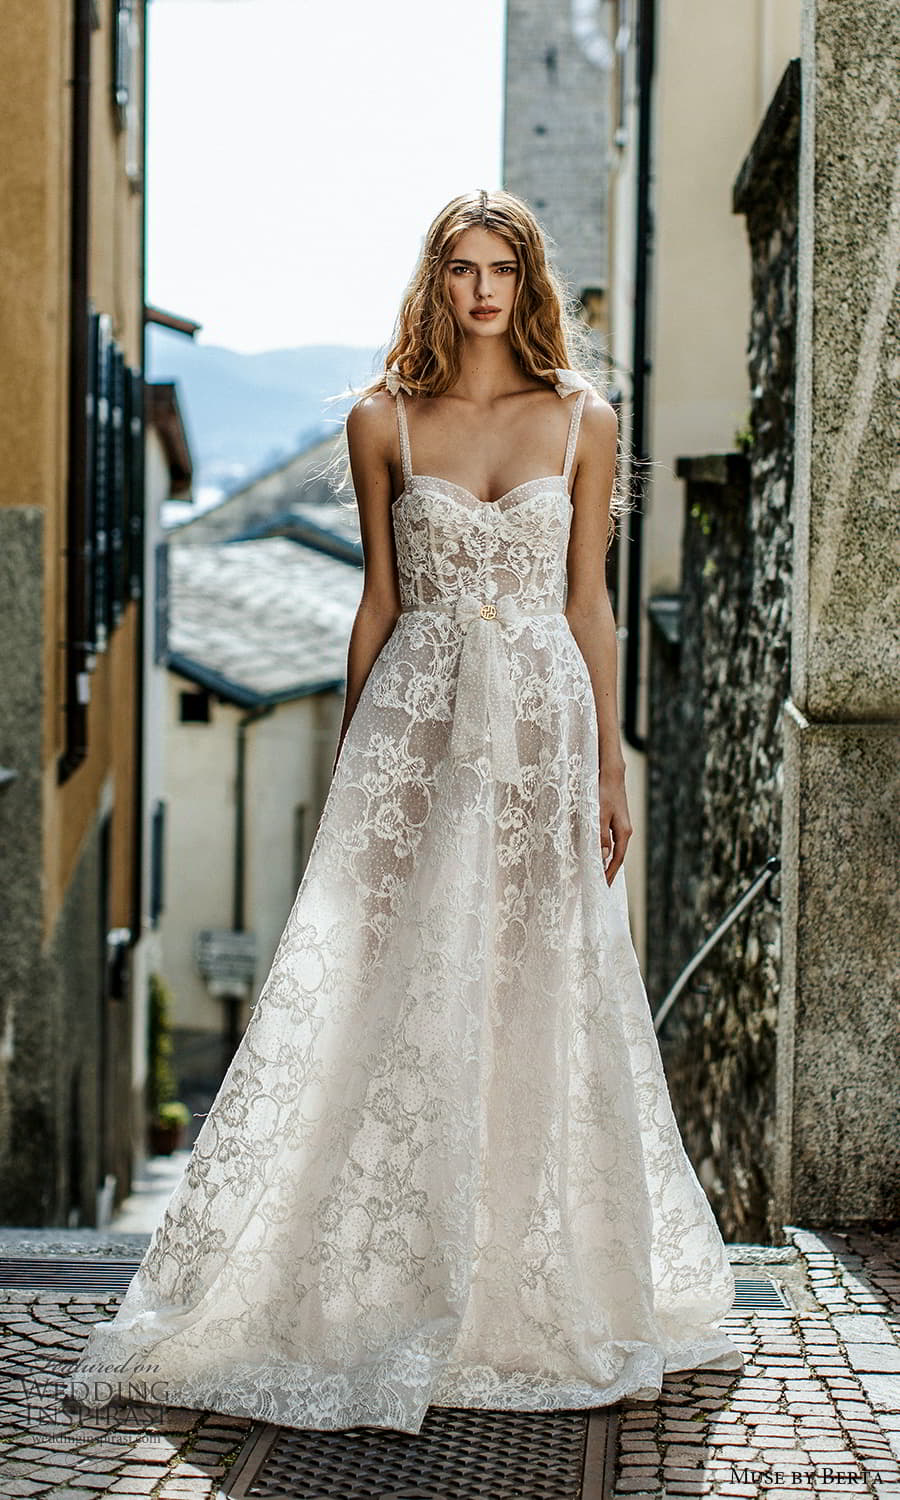 muse by berta spring 2022 bridal sleevelss straps semi sweetheart neckline fully embellished lace a line ball gown wedding dress chapel train (8) mv